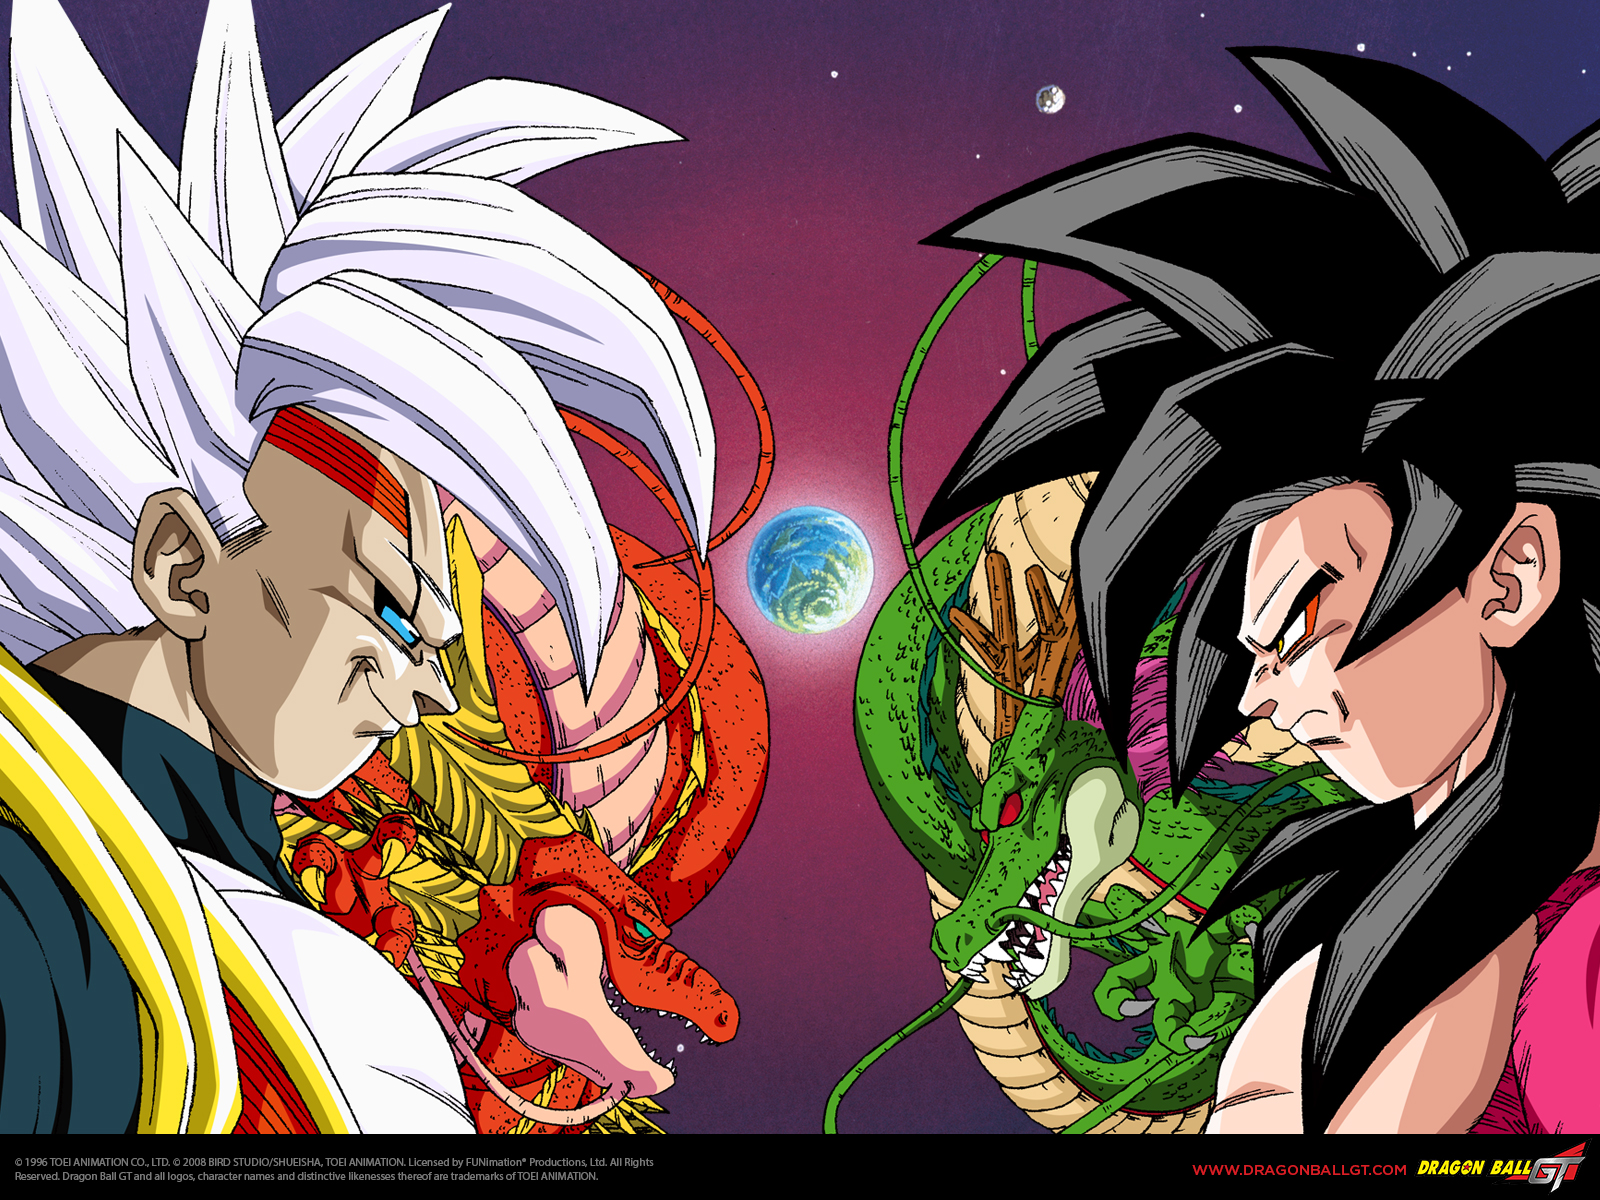 Wallpaper Sizes dragonballgtcom 1600x1200